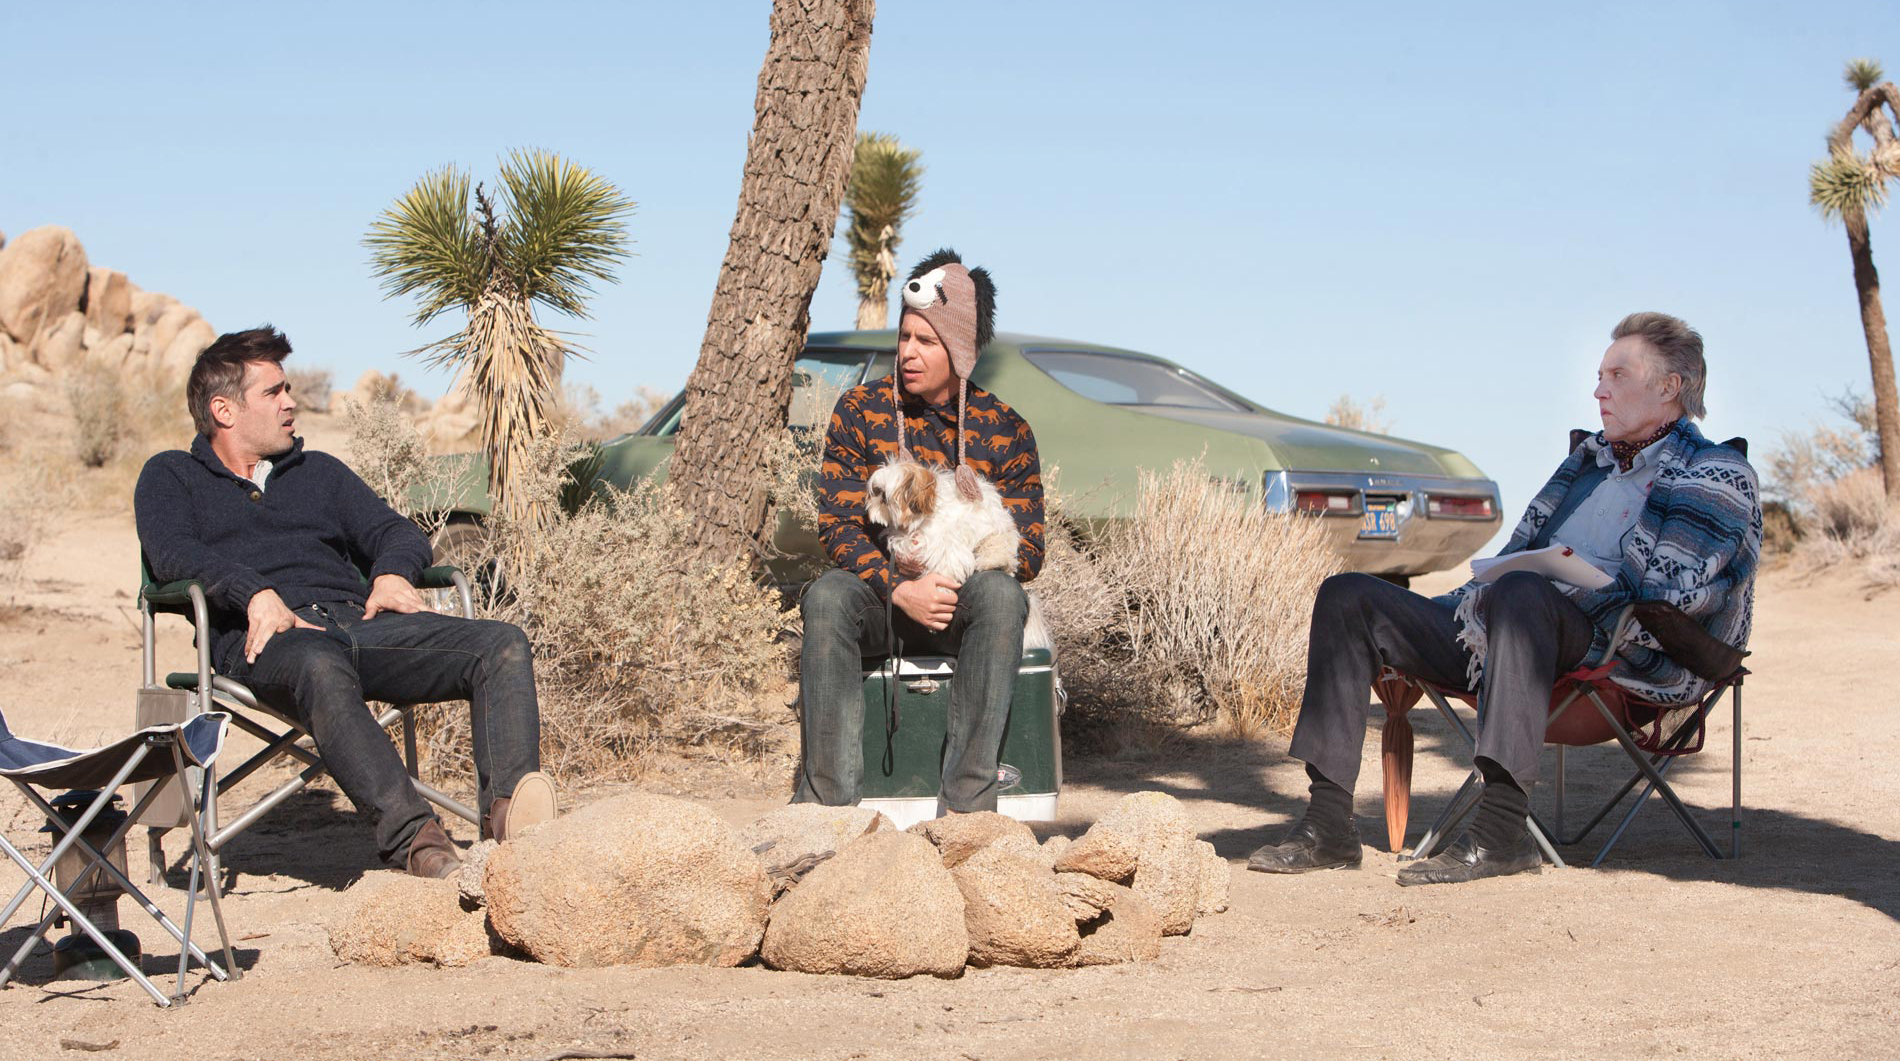 Seven Psychopaths Movie Review: Seven Psychopaths (2012)